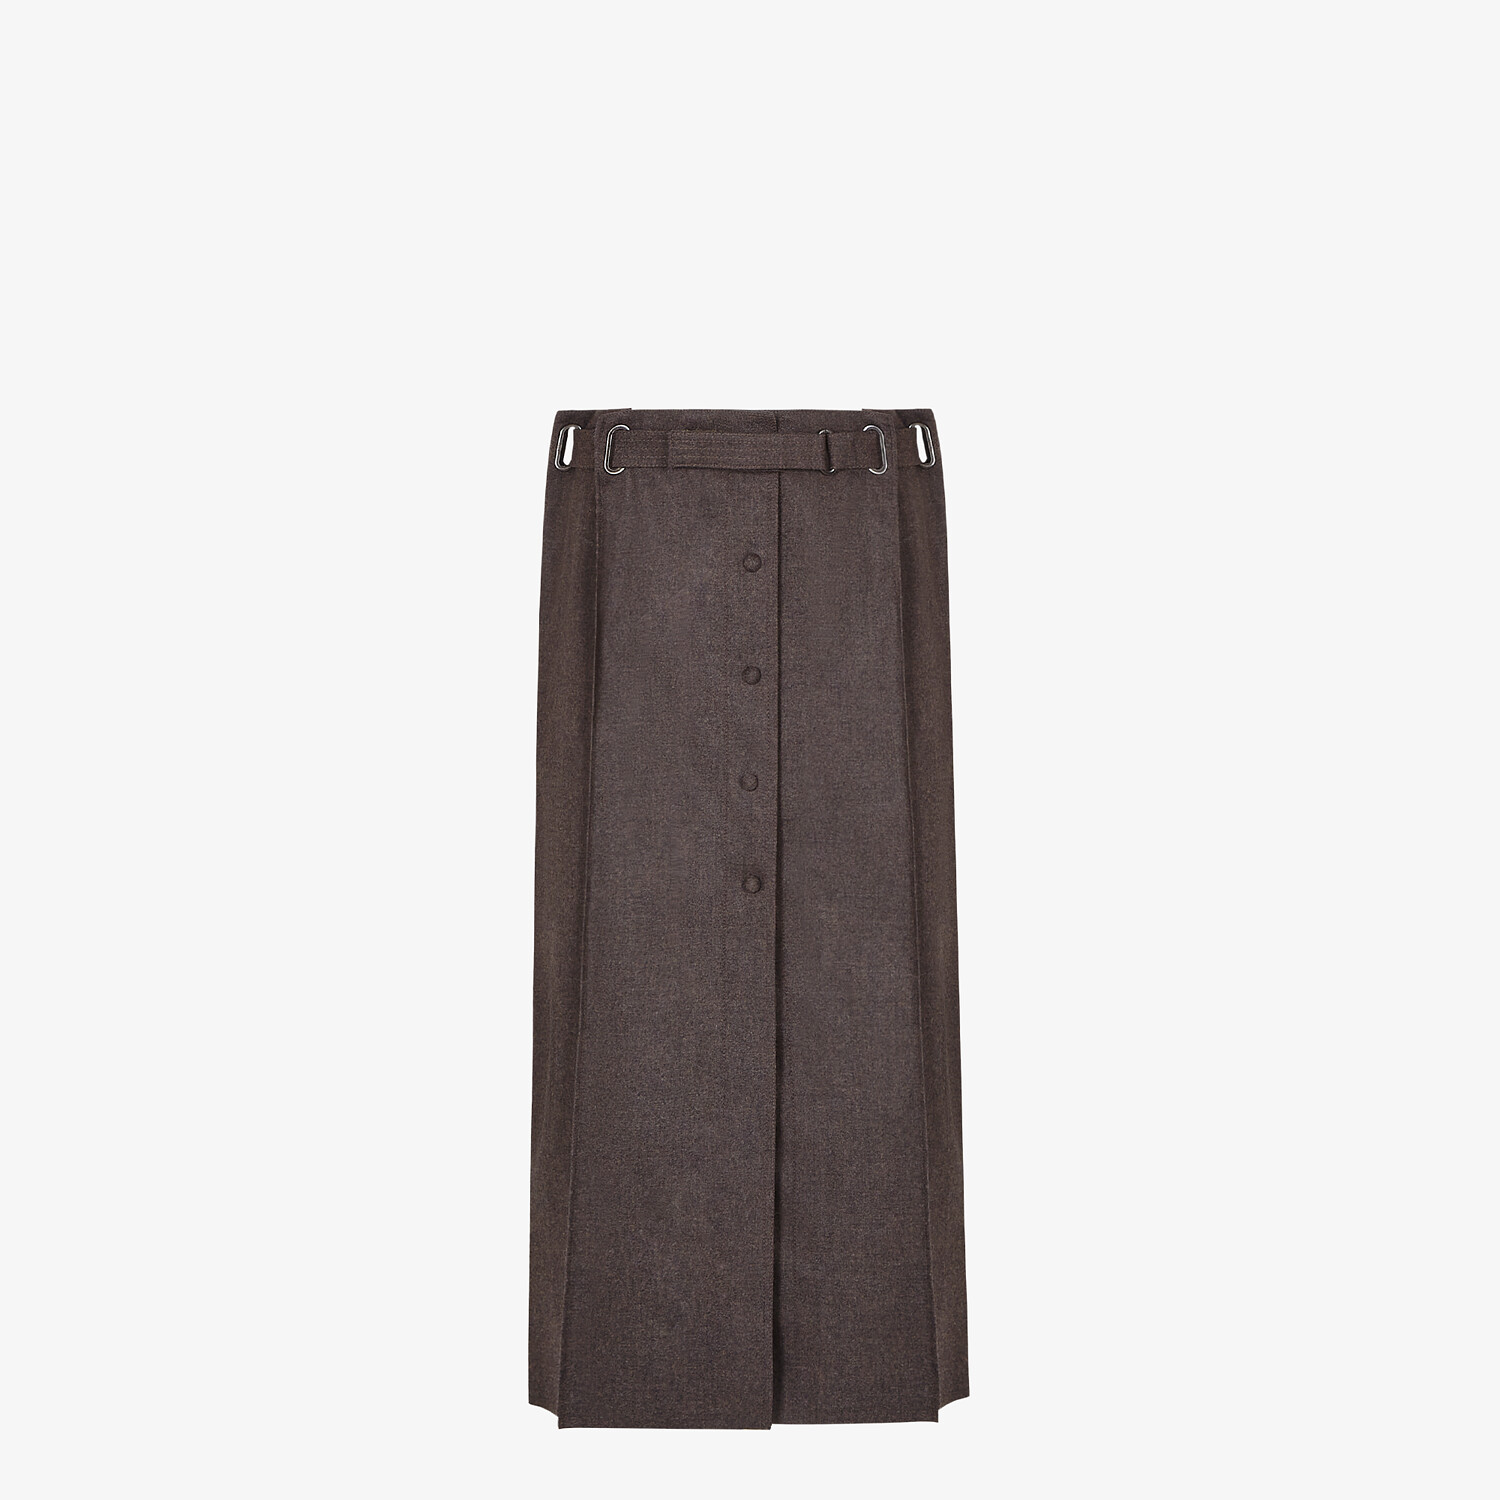 FENDI SKIRT - Brown cashmere and flannel skirt - view 1 detail